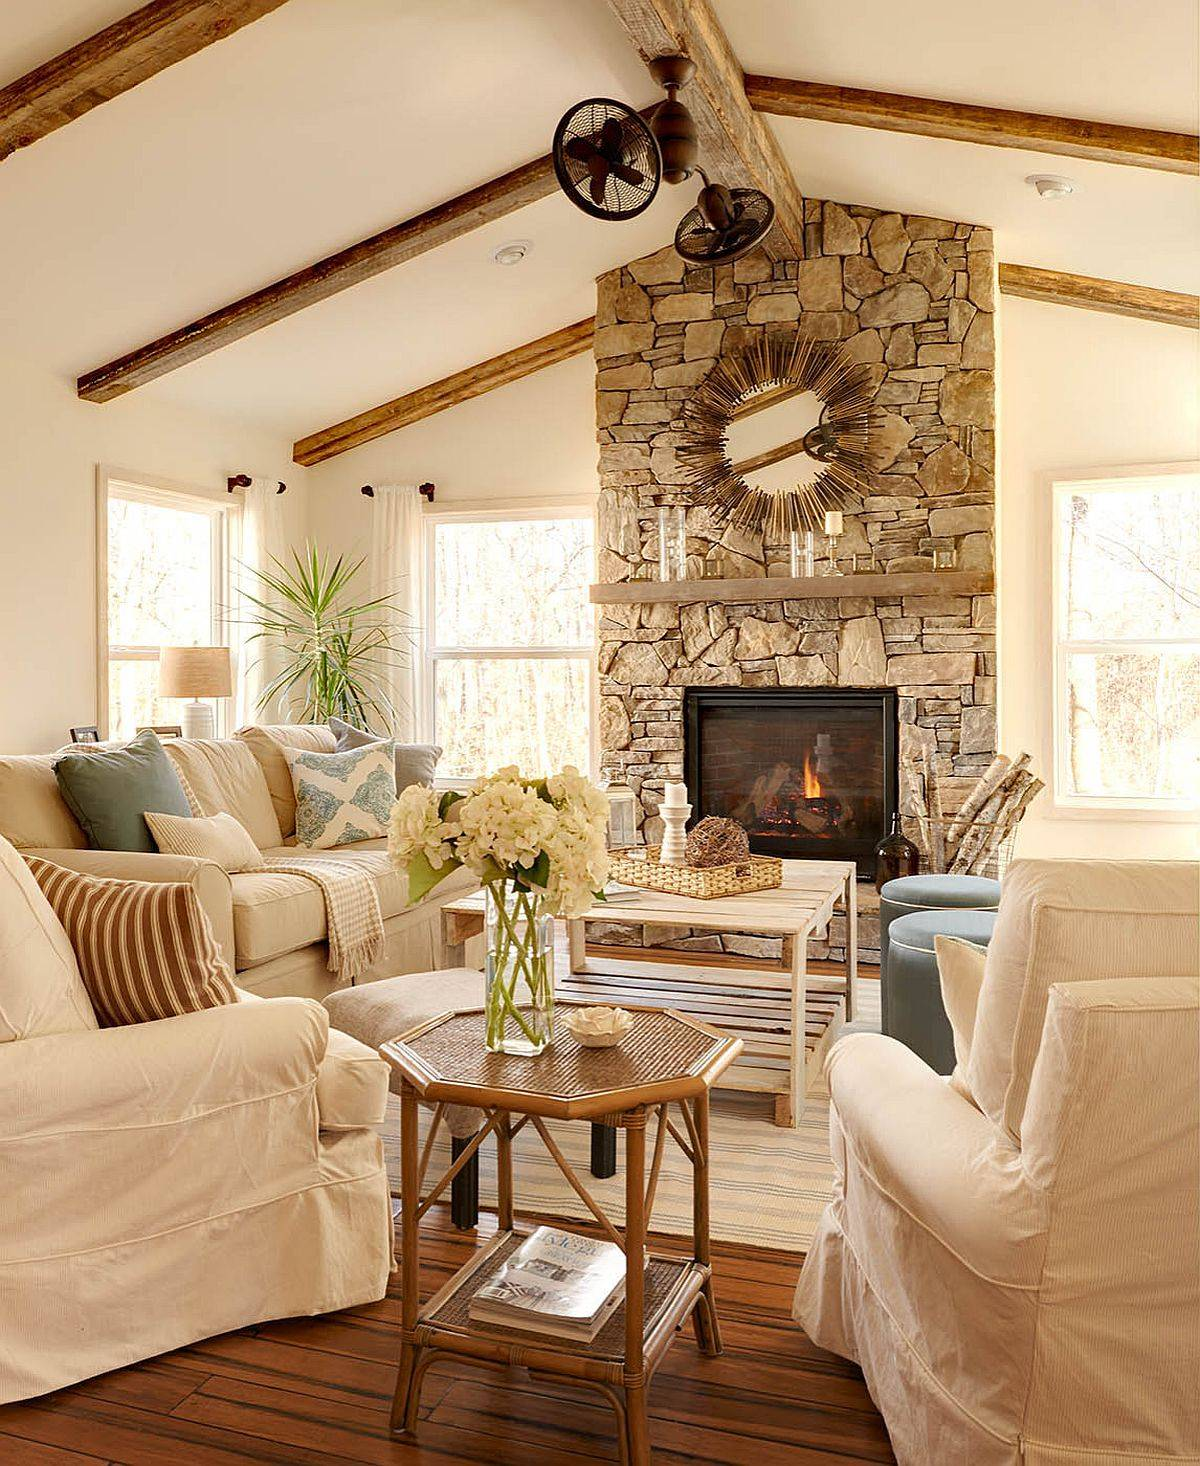 Comfy-farmhouse-living-room-with-warm-neutral-hues-and-stone-fireplace-86493